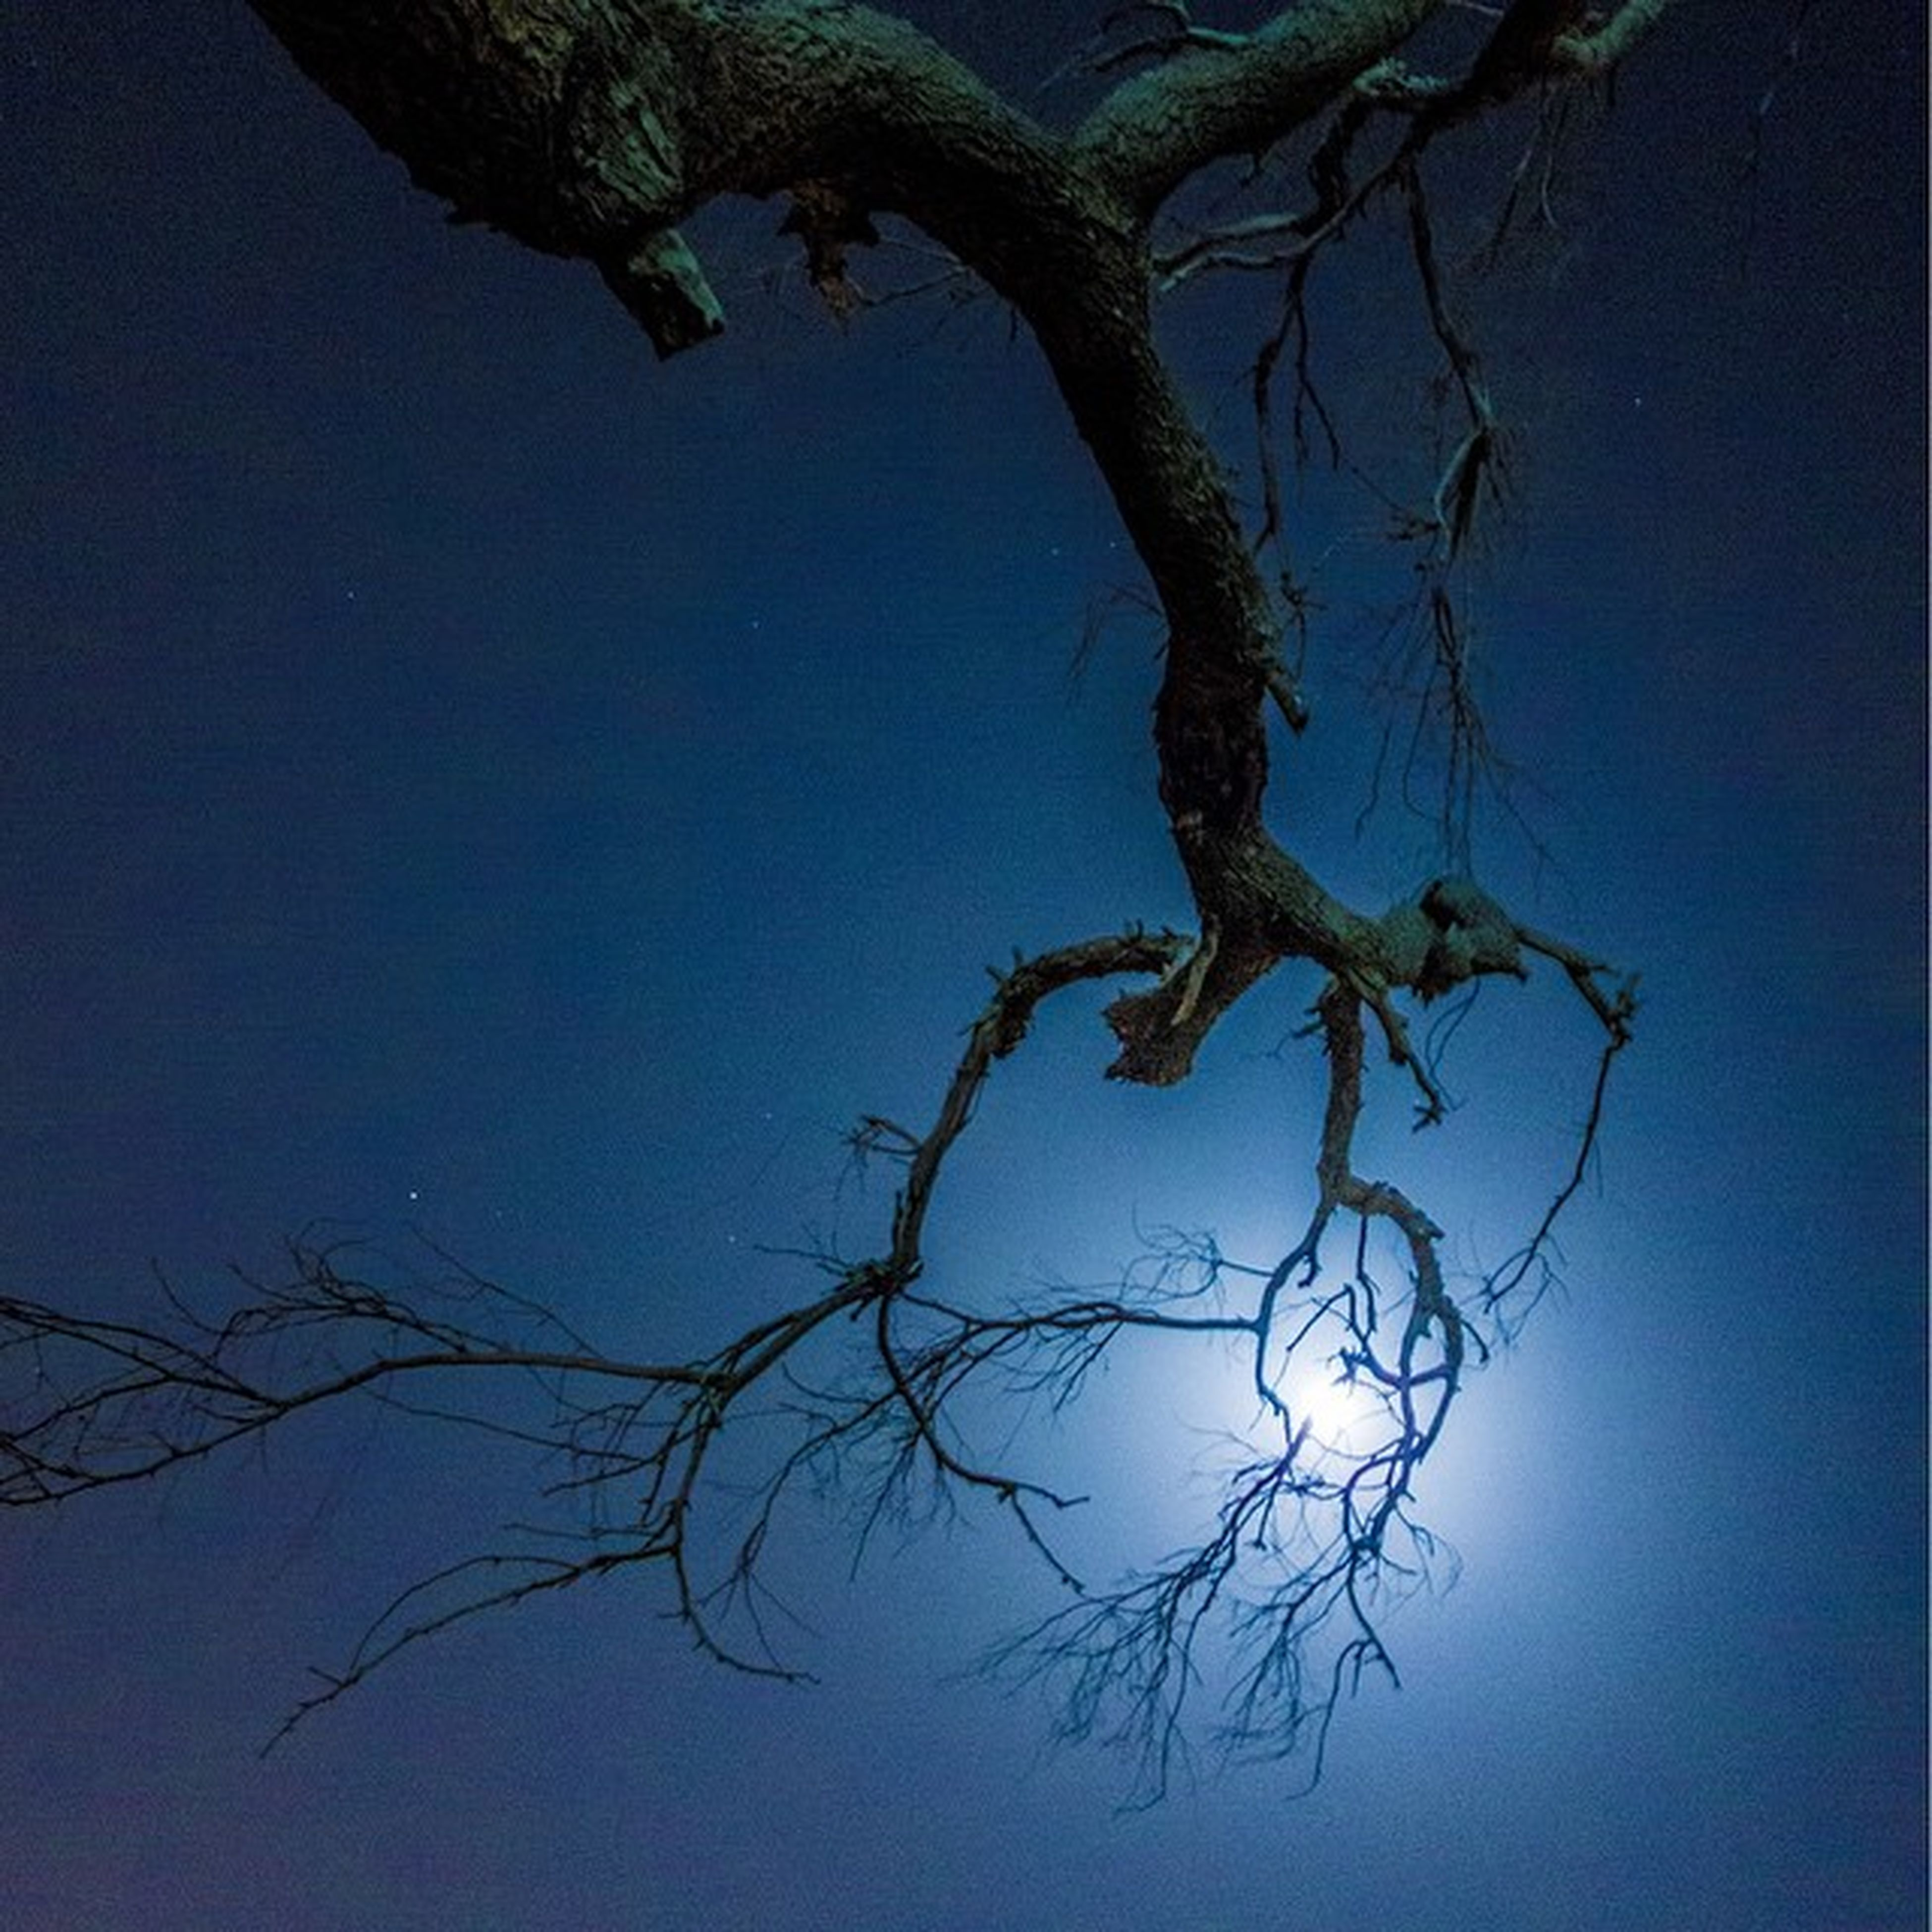 branch, clear sky, tree, bare tree, low angle view, nature, tranquility, blue, copy space, beauty in nature, twig, growth, tree trunk, silhouette, sky, no people, outdoors, scenics, dead plant, leaf